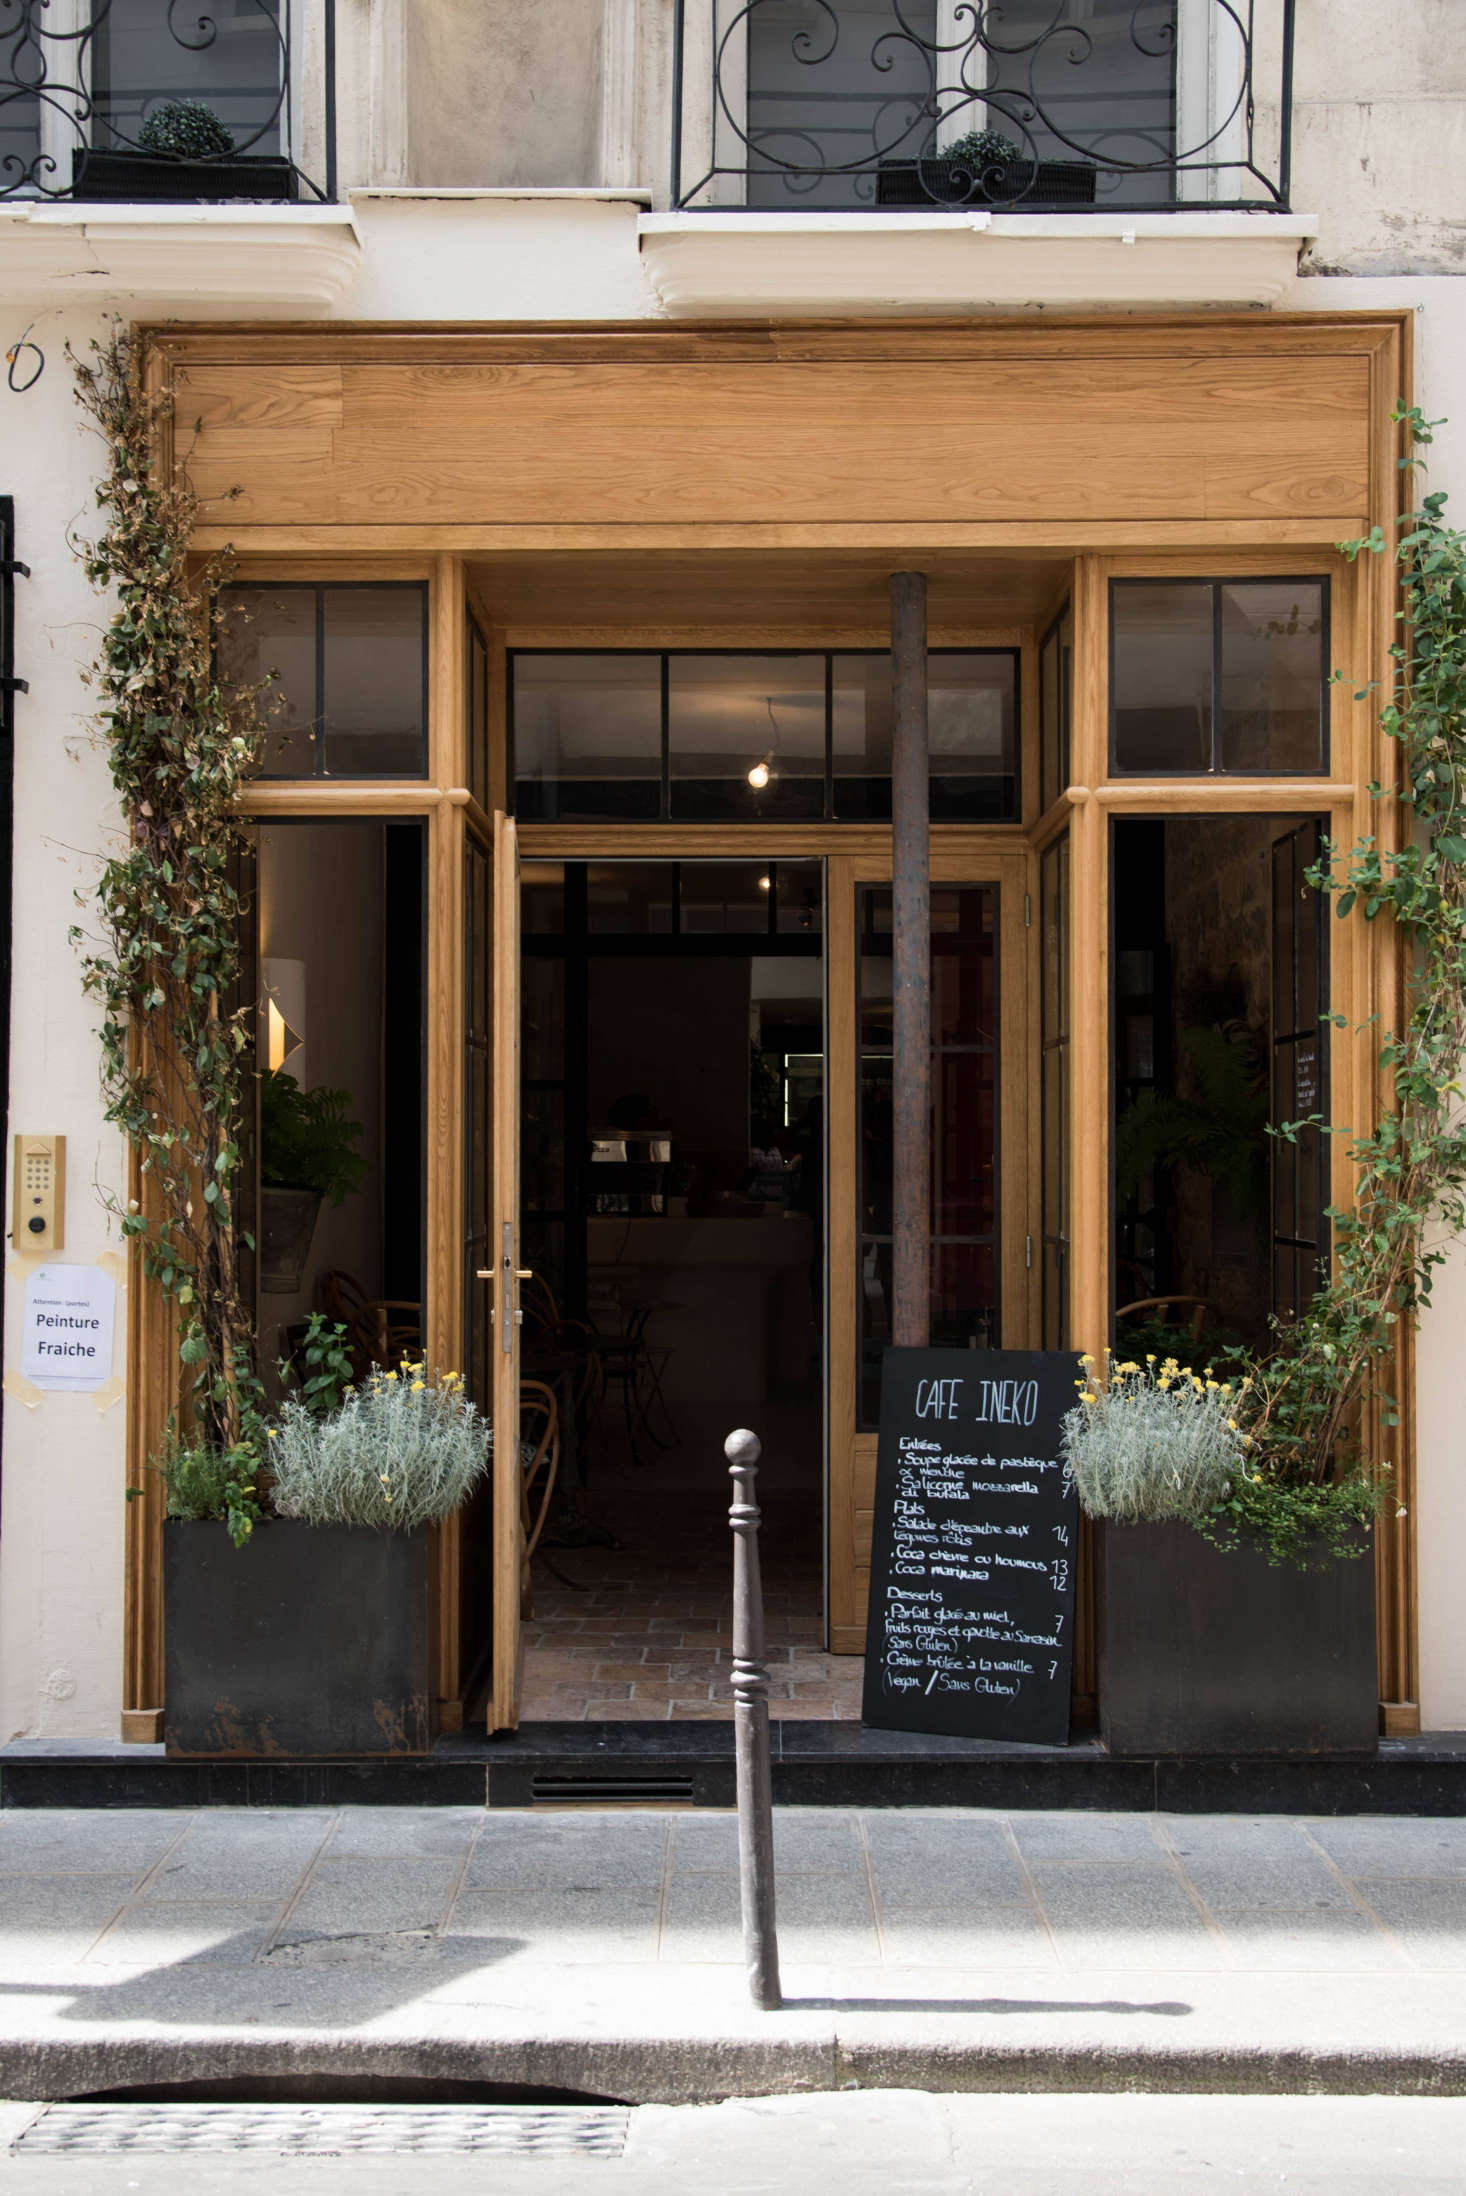 """Consider curb appeal: To invite passerby into Café Ineko, de Villeneuve and Champsaur transformed the facade with new wood trim. """"The building is from the 17th century and protected,"""" de Villeneuve says, so after getting special authorization from the city, they tread carefully to upgrade the exterior (and the interiors) with respect to its history. Potted plants, custom steel-frame doors and windows, and trailing vines add to the charm."""